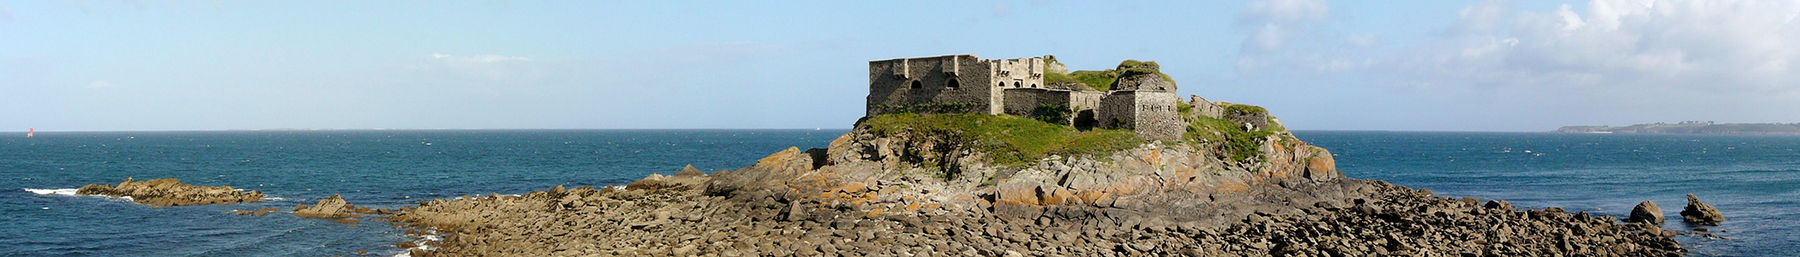 Fortress of the Îlette of Kermovan, in municiplaity of Le Conquet (Finistère)